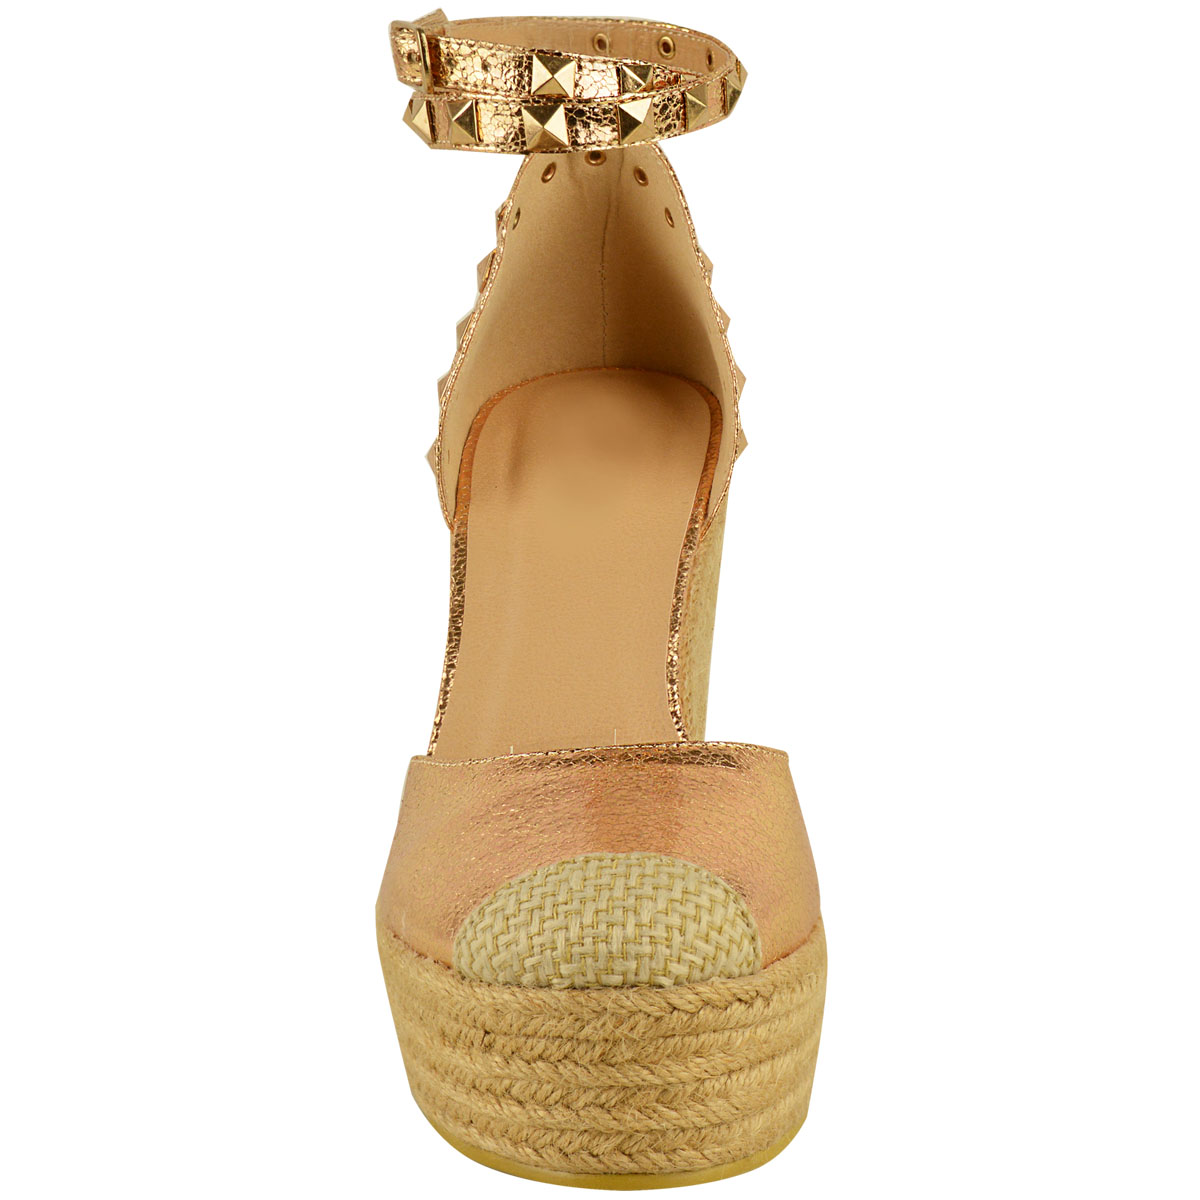 New-Womens-Stud-Espadrille-Wedge-Summer-Sandal-Ladies-Rose-Gold-Party-Shoes-Size thumbnail 25